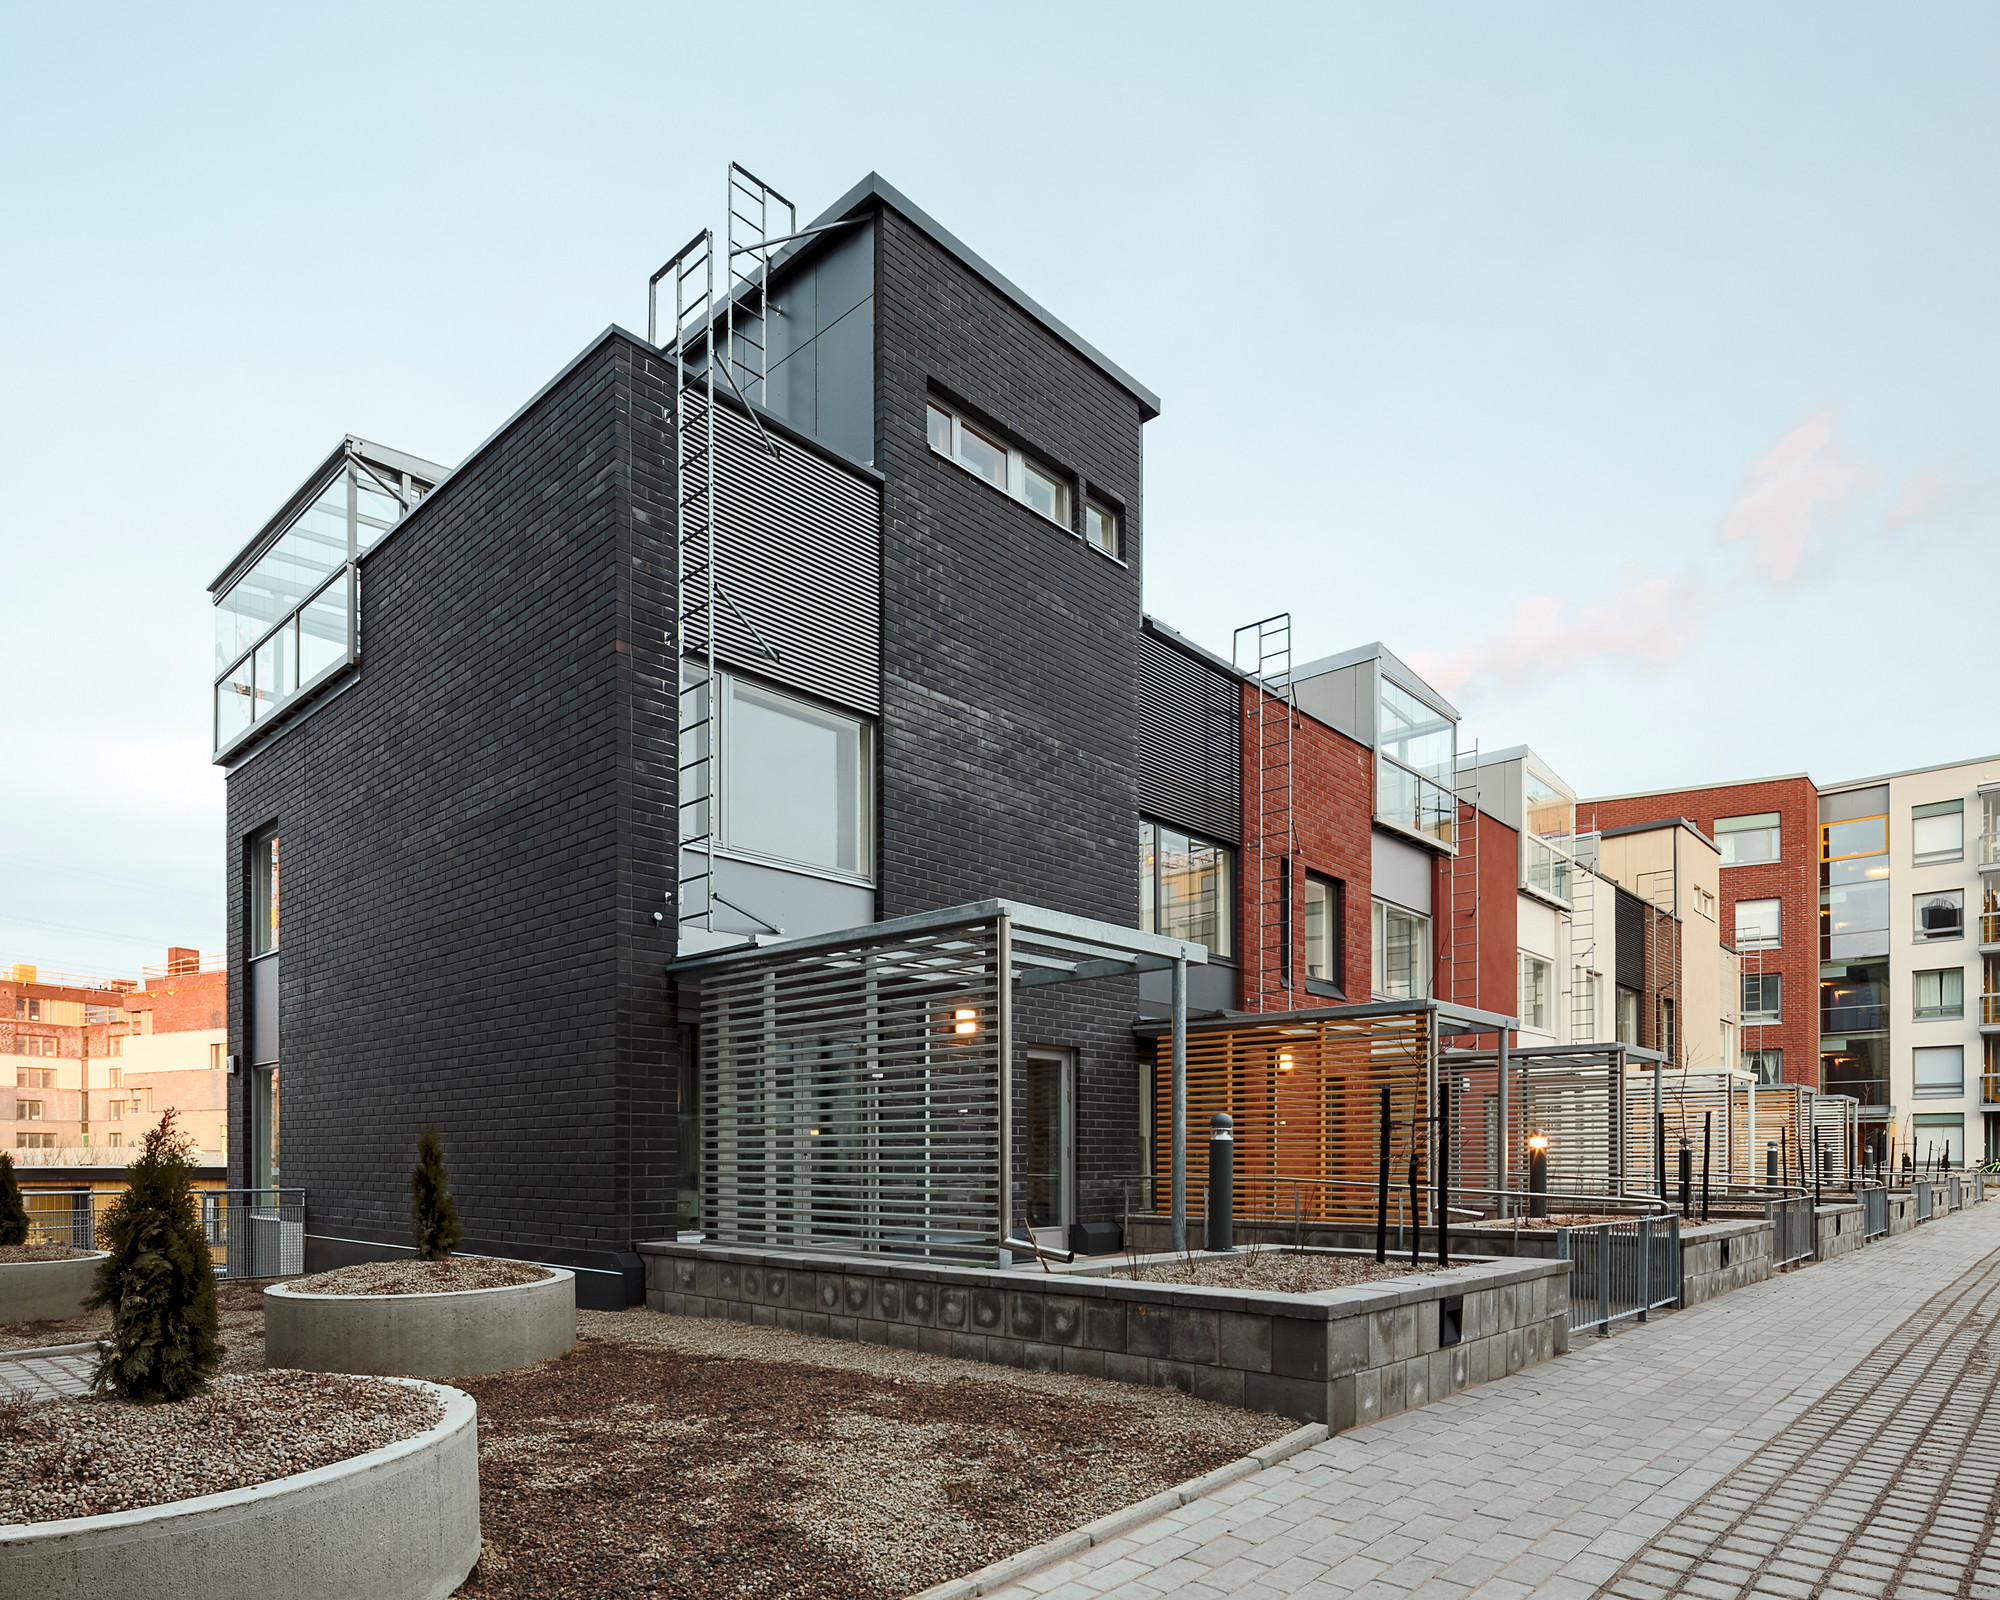 Kalasataman Huvilat Townhouses / PORTAALI architects Ltd + ArkOpen Ltd, © Photos Tuomas Uusheimo